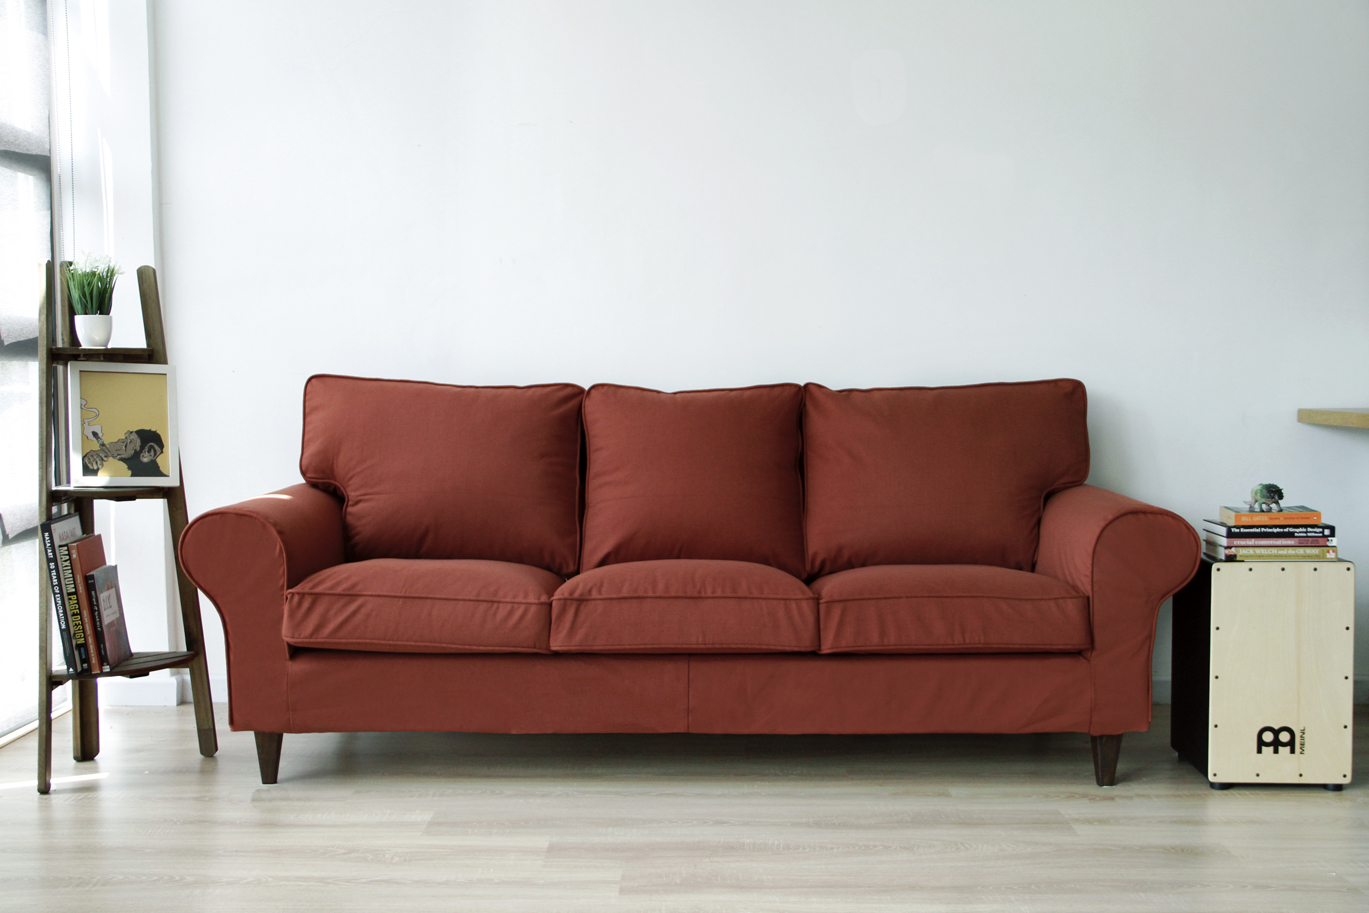 IKEA Ektorp Sofa with Custom Slipcovers and Stained legs